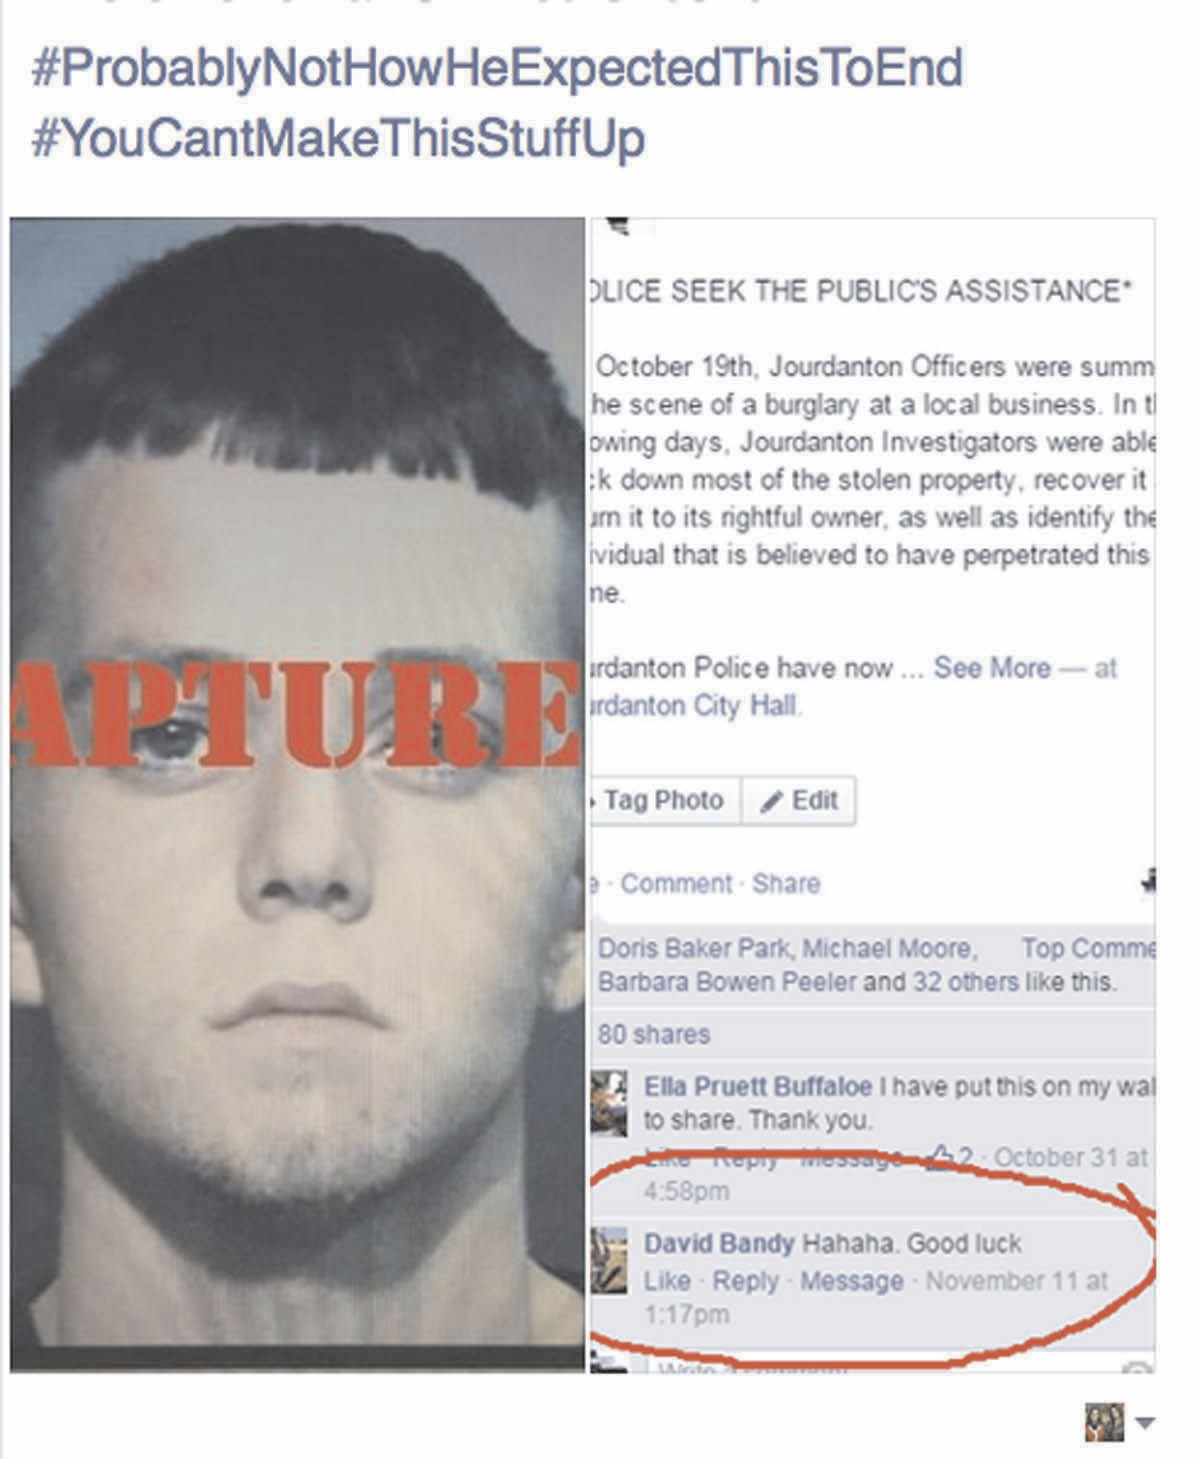 the comment by a wanted suspect circled in red.